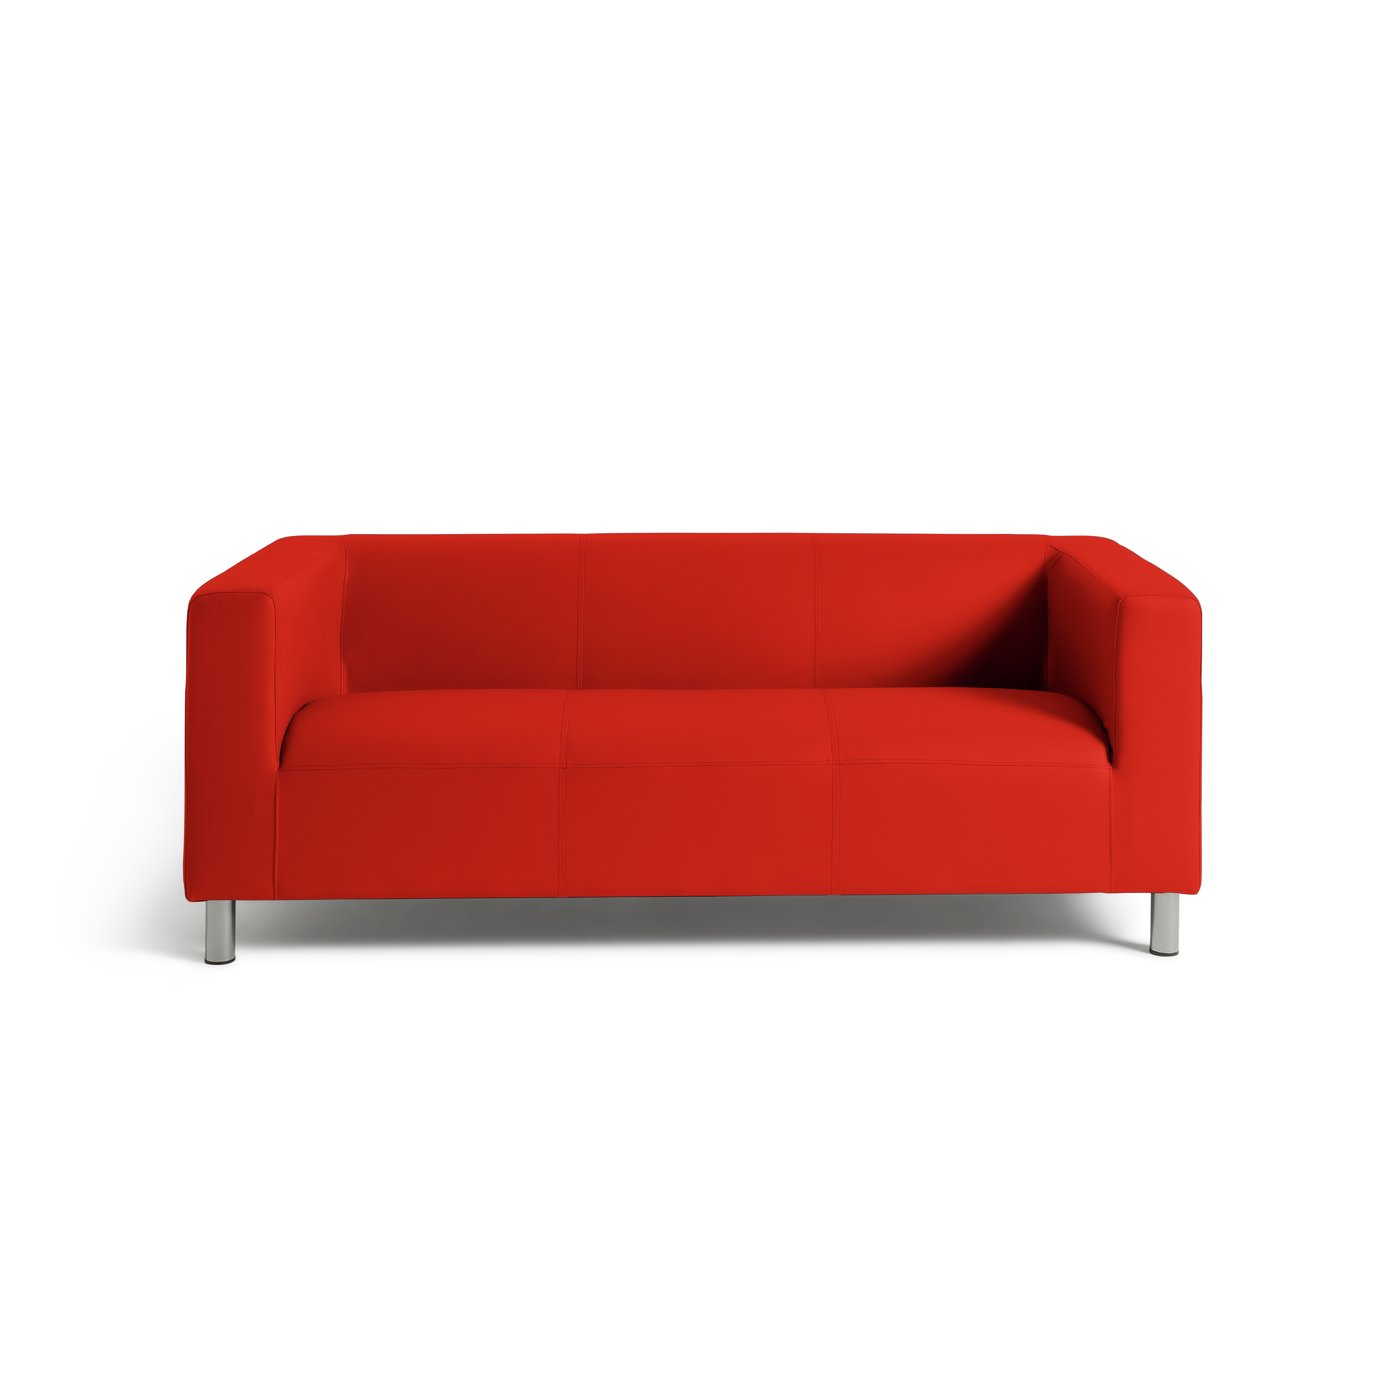 Sofa Settee Argos Buy Argos Home Moda 3 Seater Faux Leather Sofa Red